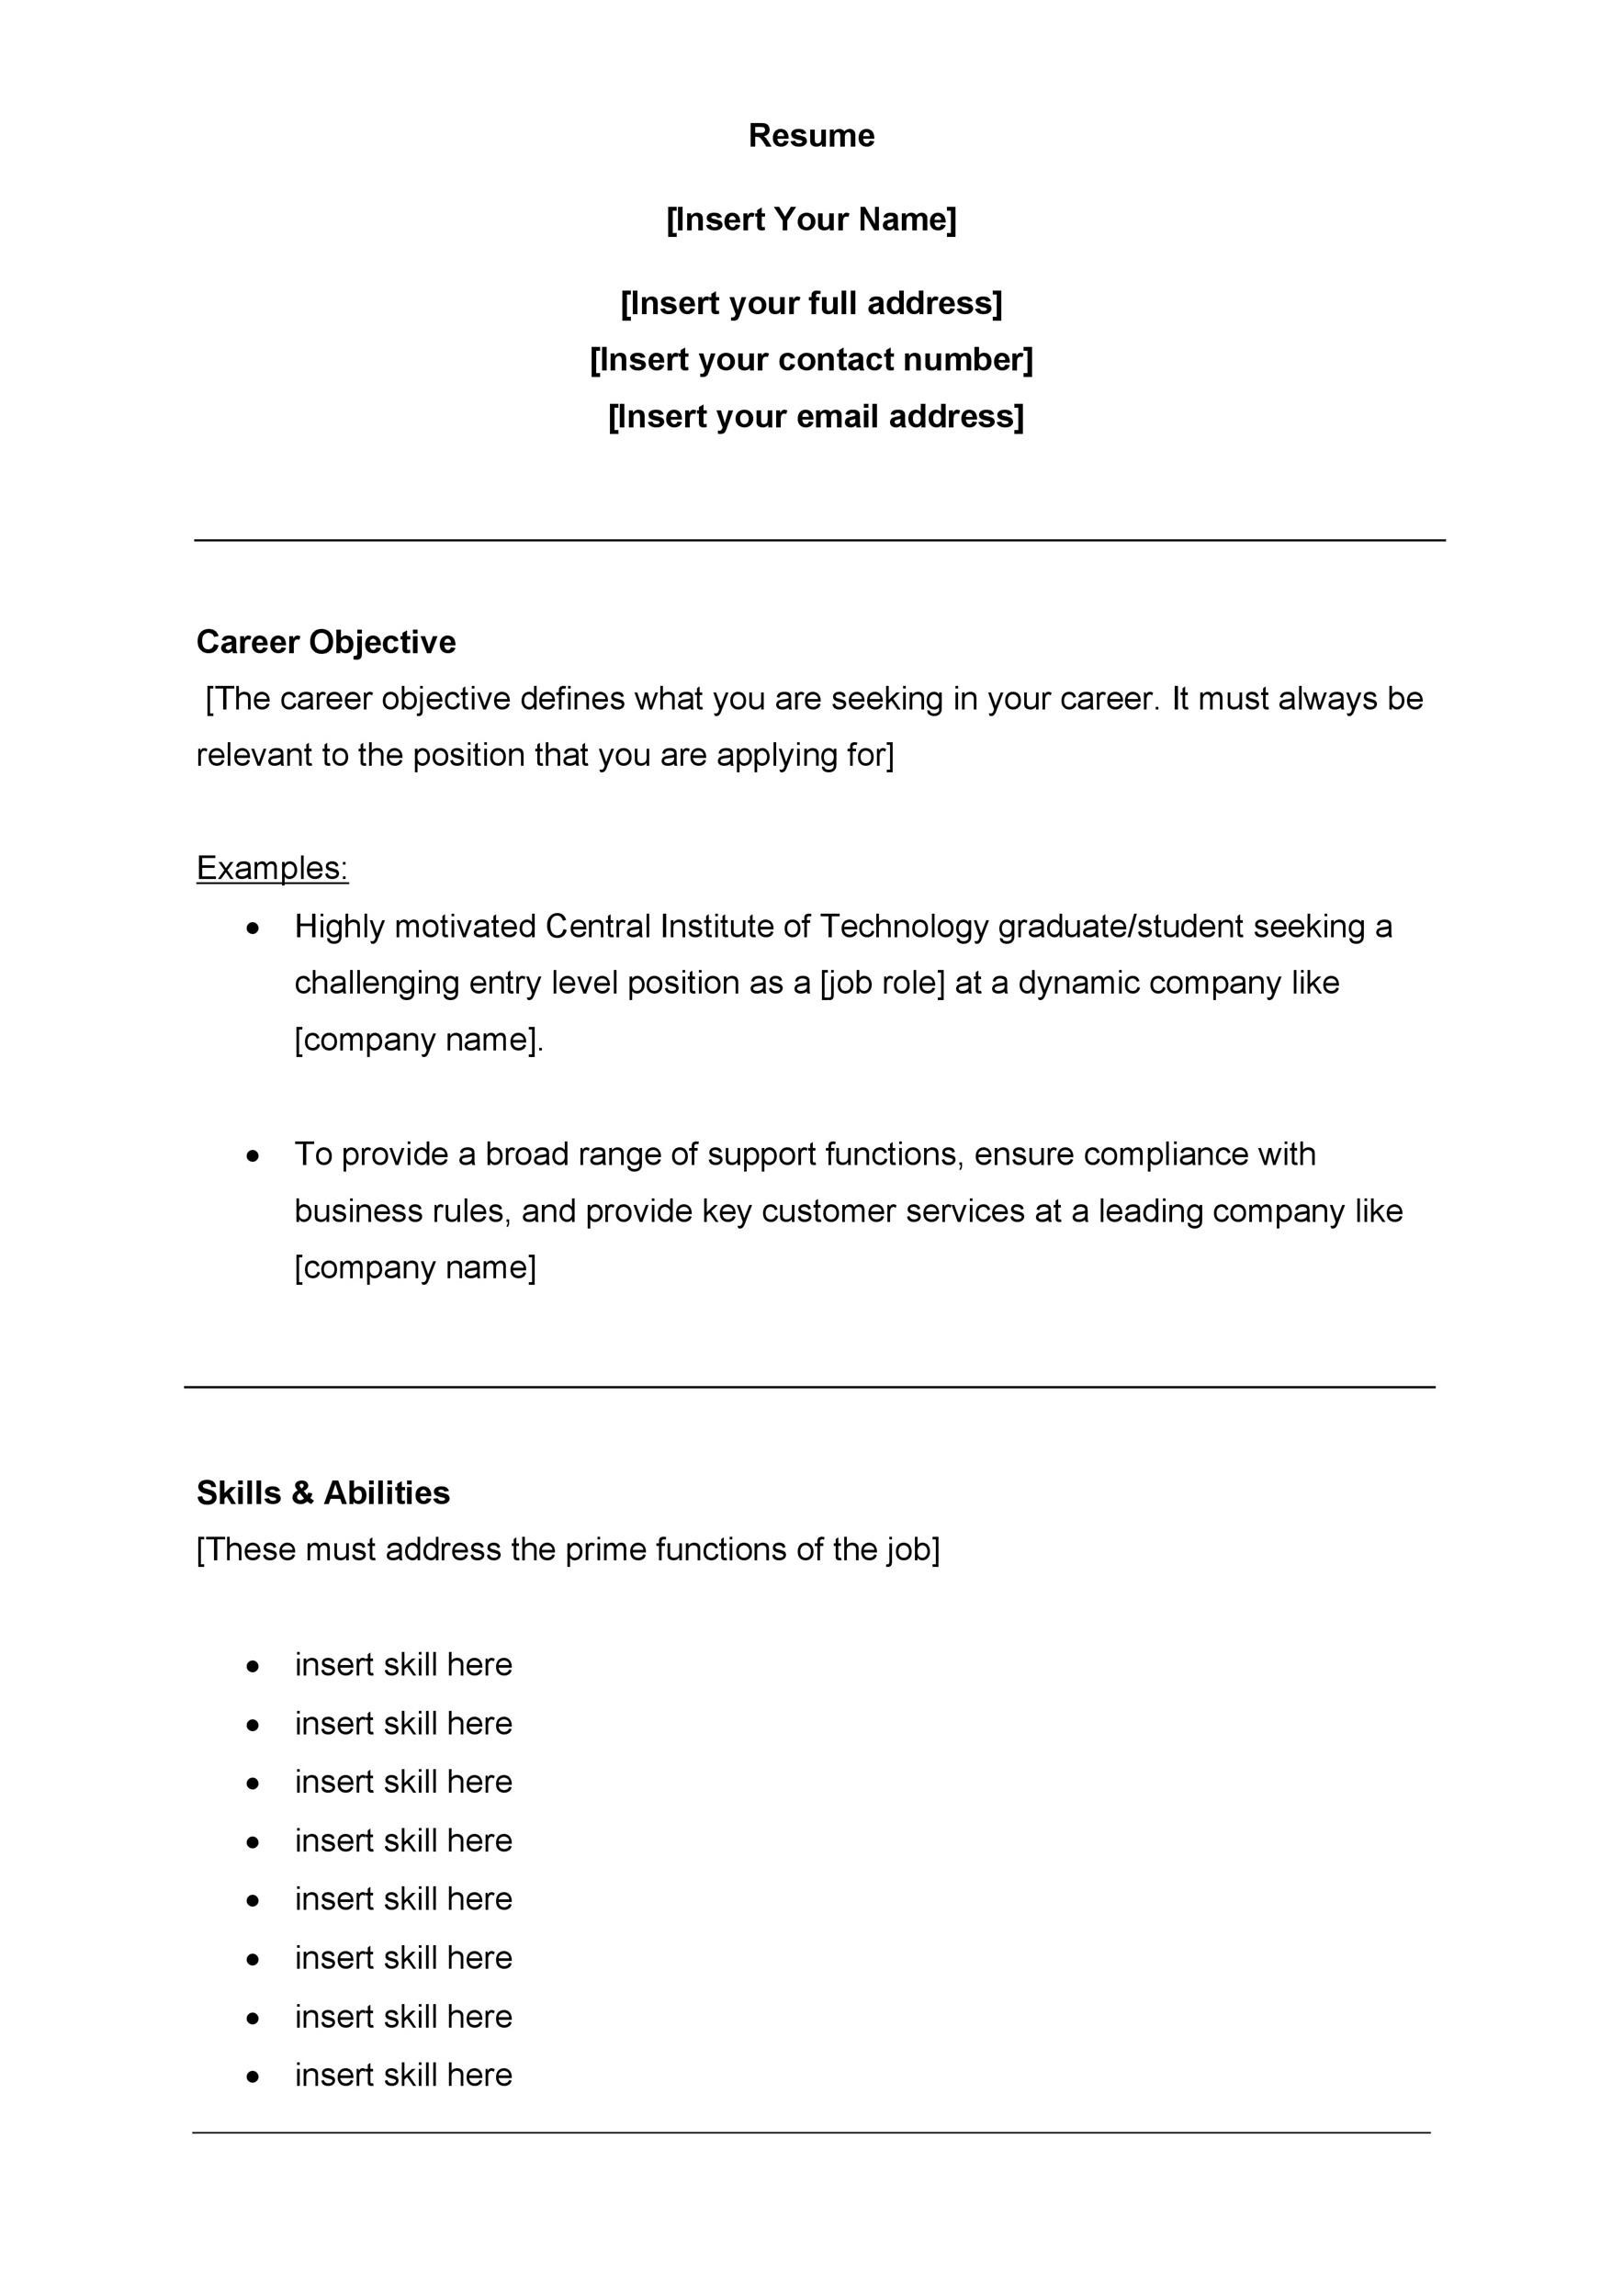 Customer Service Resume Samples  Resume Outline Template